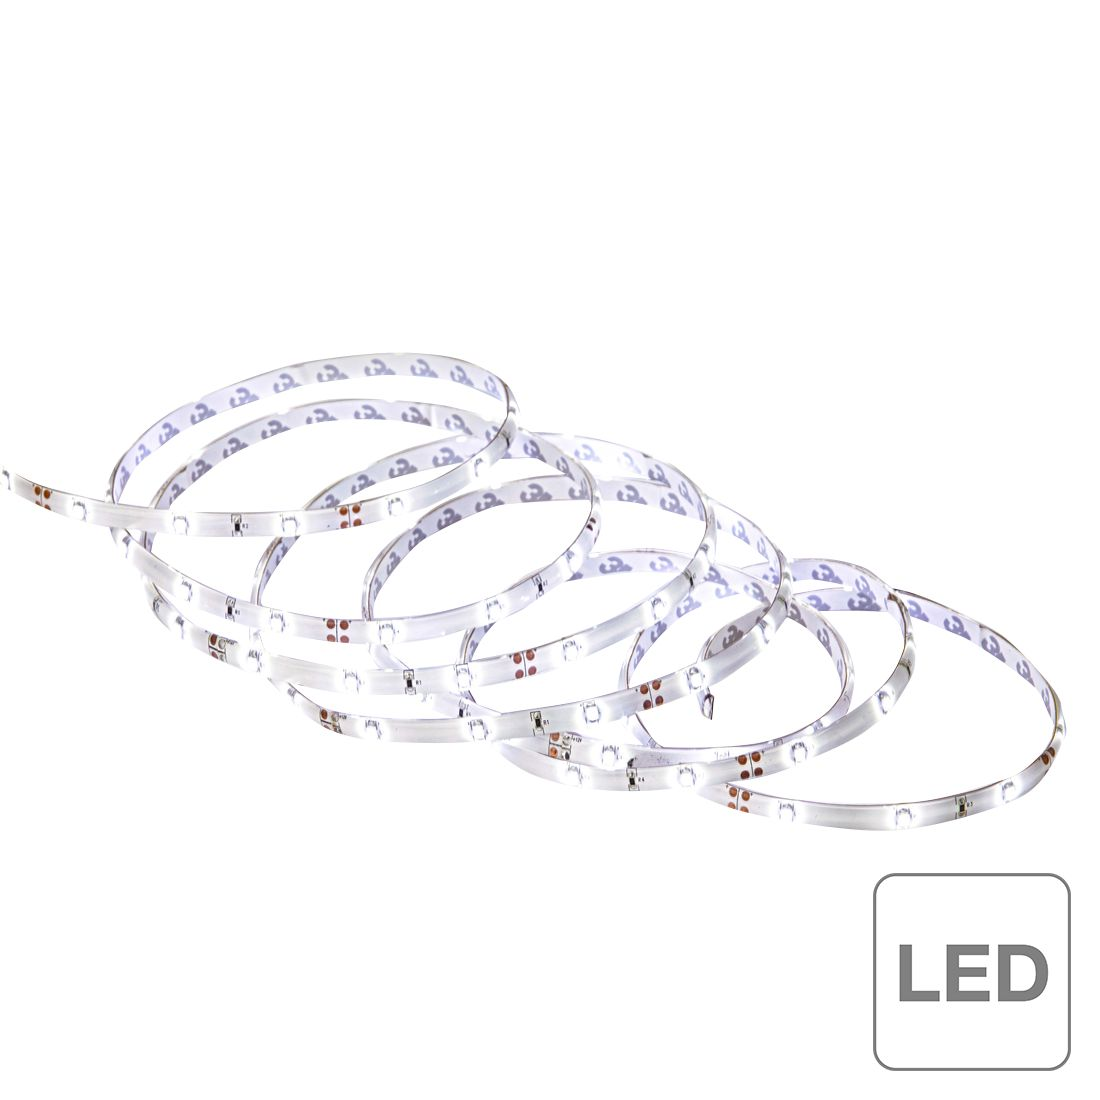 Wandleuchte Light Strip LED - 5-flammig, Brilliant